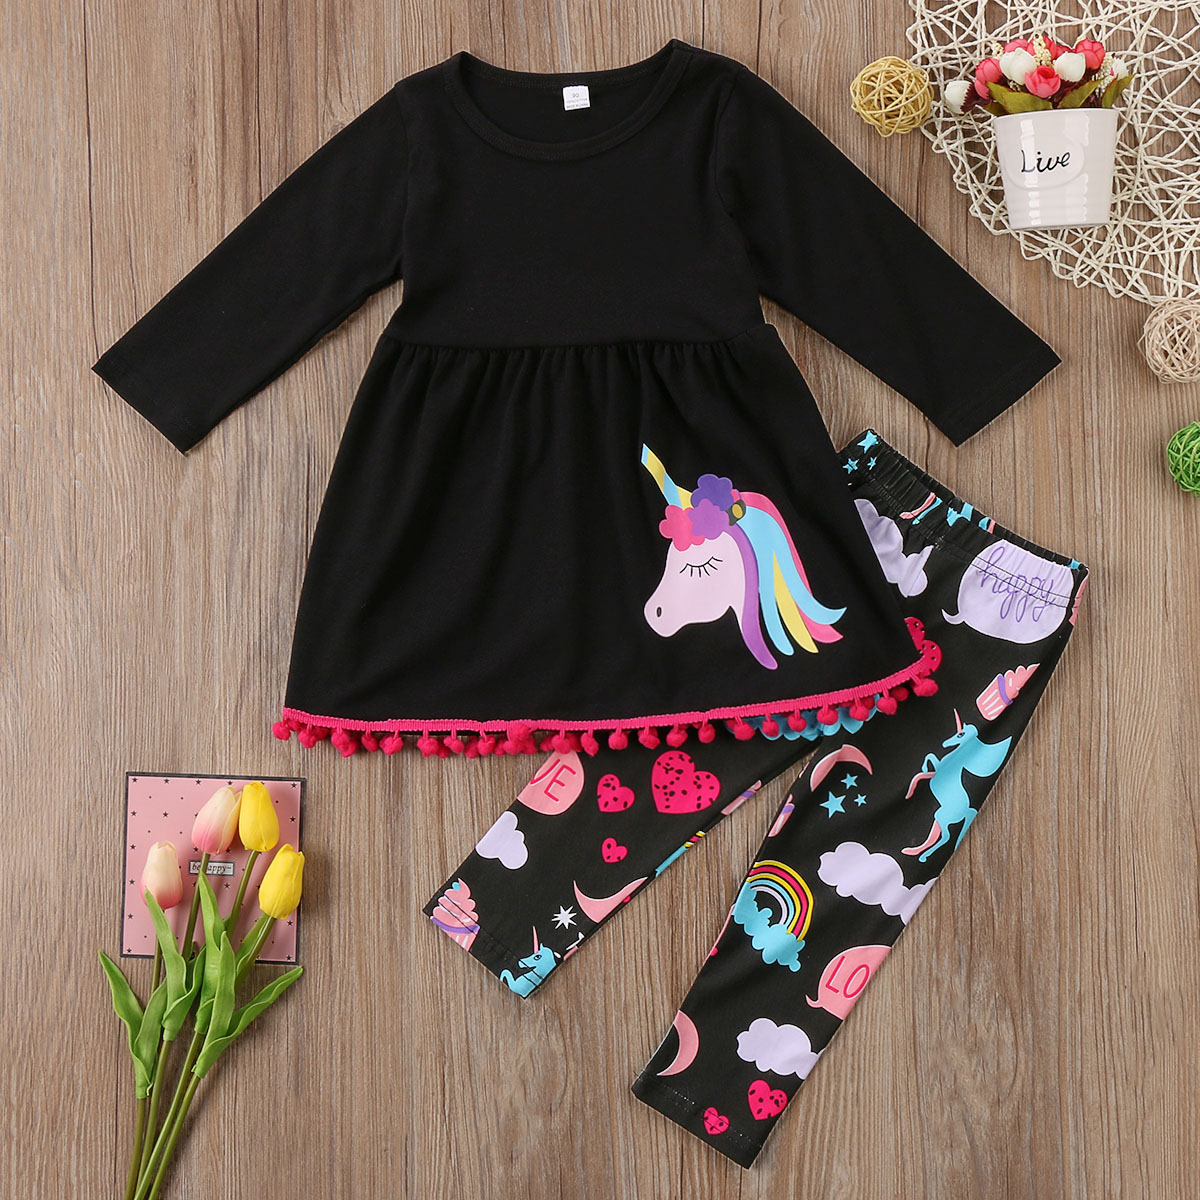 Unicorn Kids Baby Girls Outfits Clothes T shirt Tops Dress